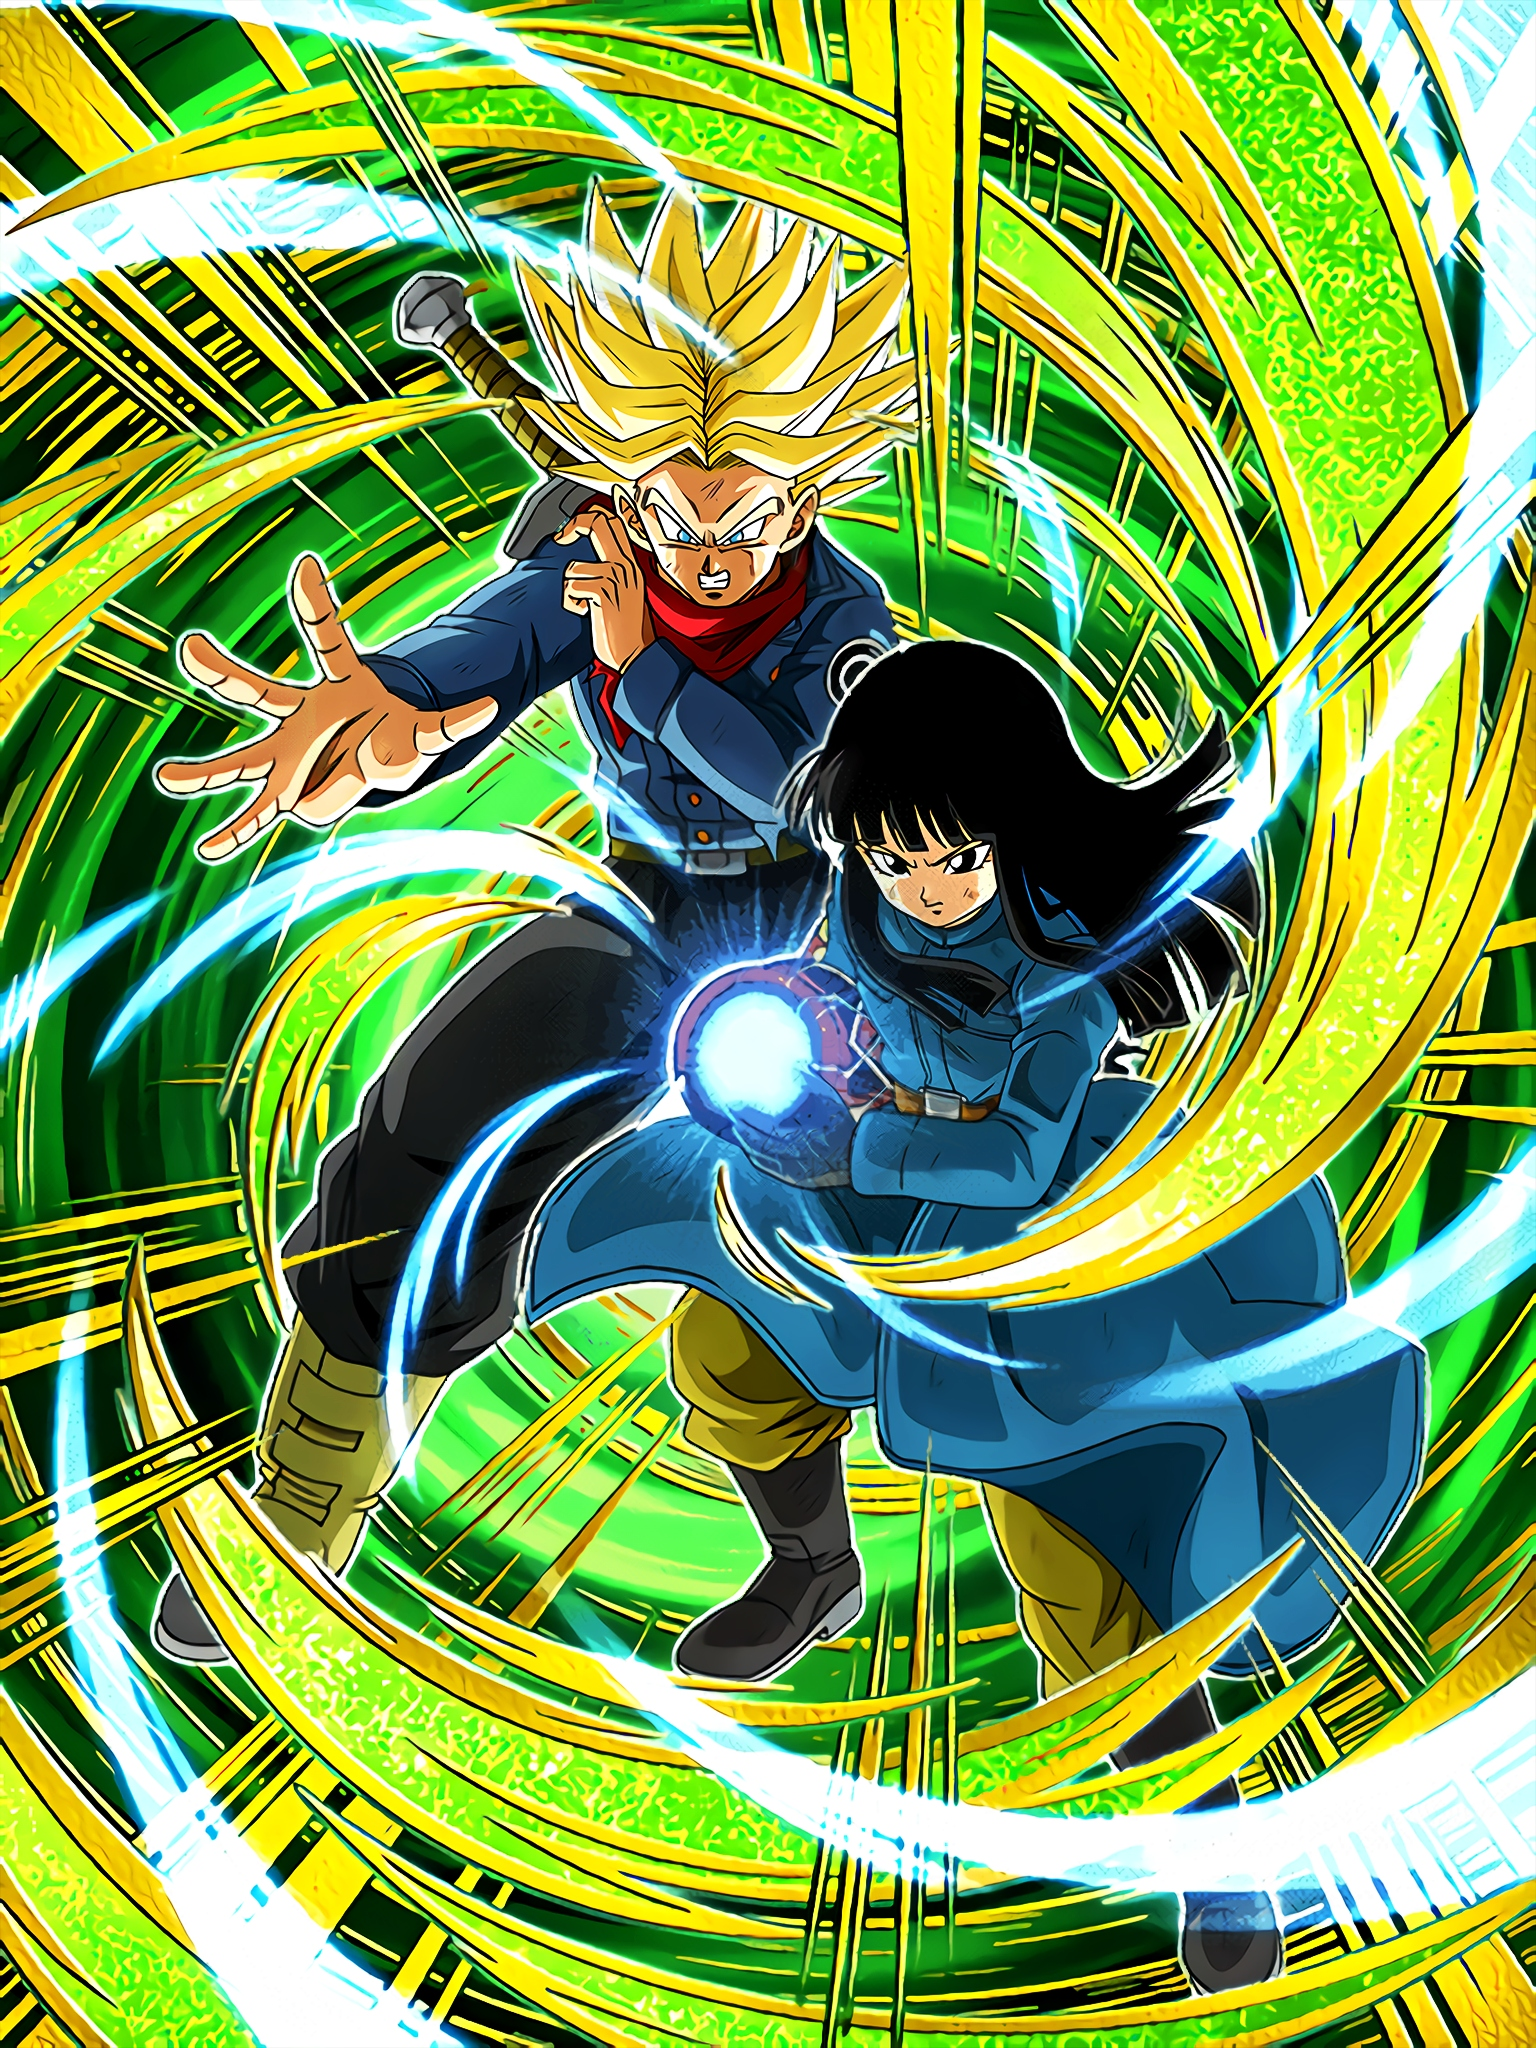 Human Pride Super Saiyan Trunks Future & Mai Future Art (Dragon Ball Z Dokkan Battle).jpg